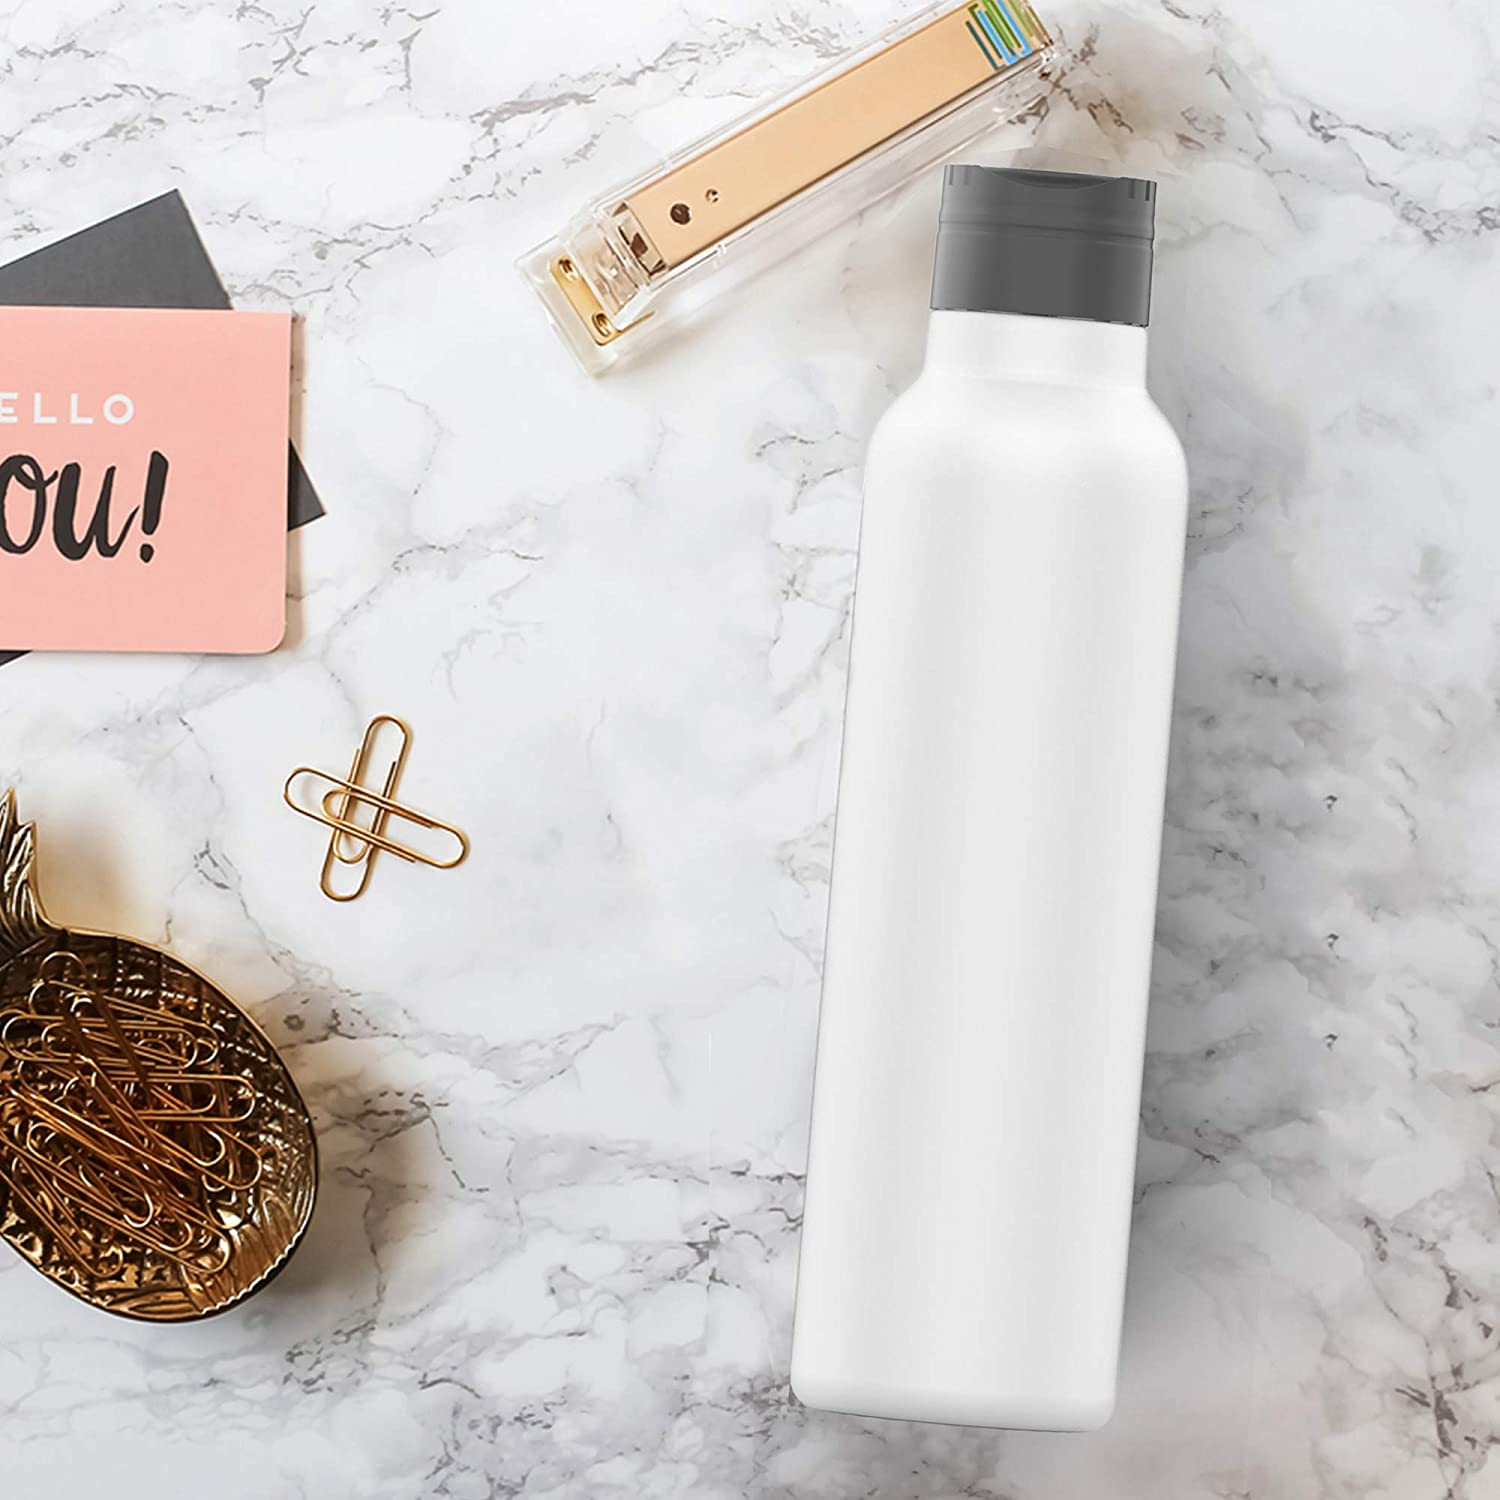 White Standard Mouth with BPA Free Cap with Handle Holiday Season 1-8 Family Pack SimpleHH 23 OZ Double Wall Vacuum Insulated Stainless Steel Leak Proof Sports Water Bottle